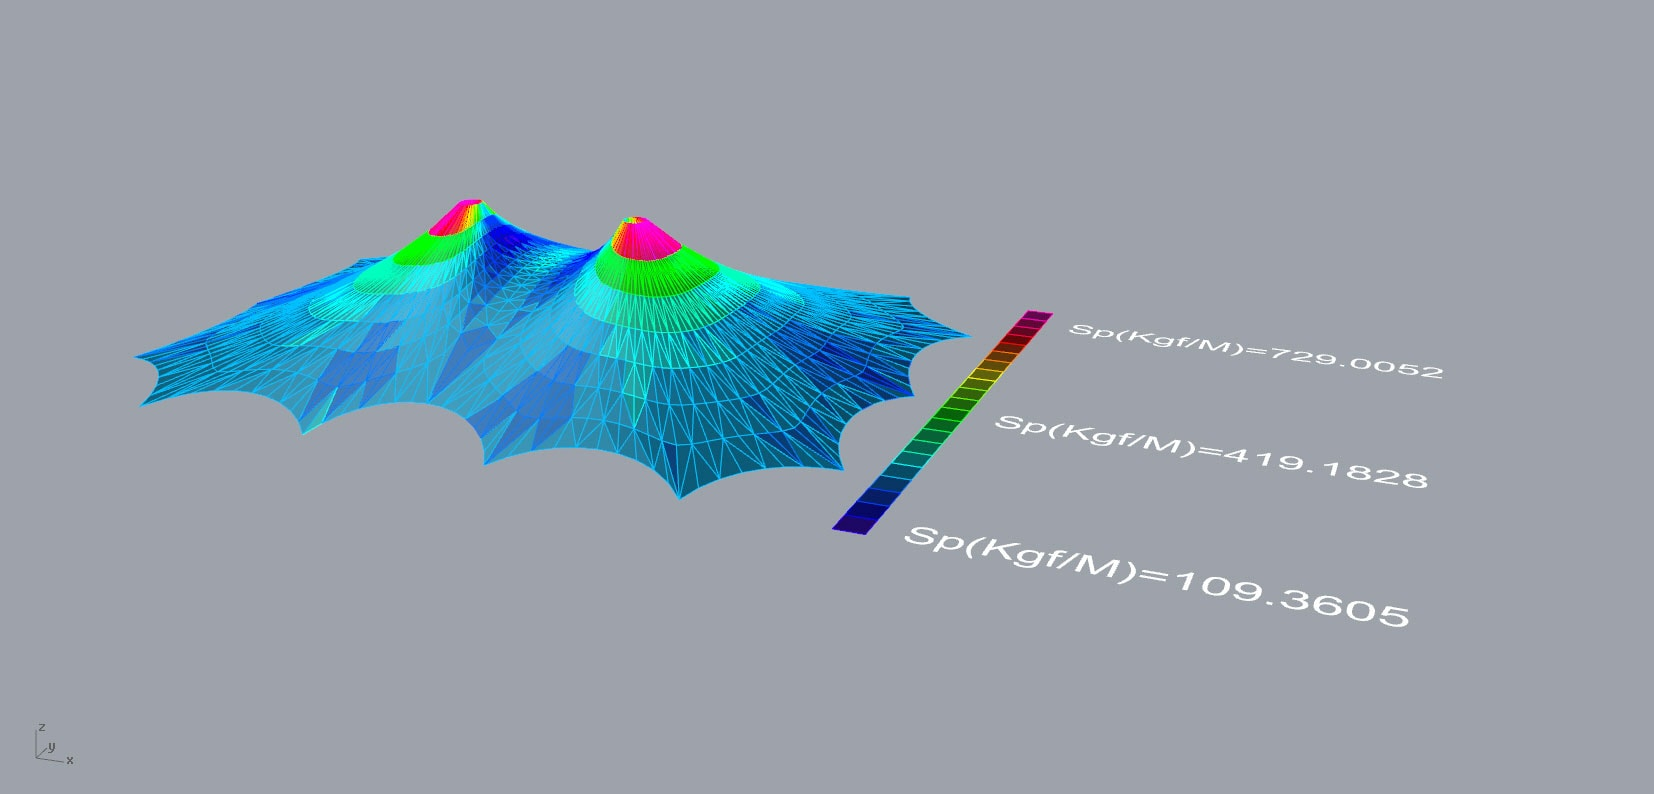 FEA analysis project by SD Sails